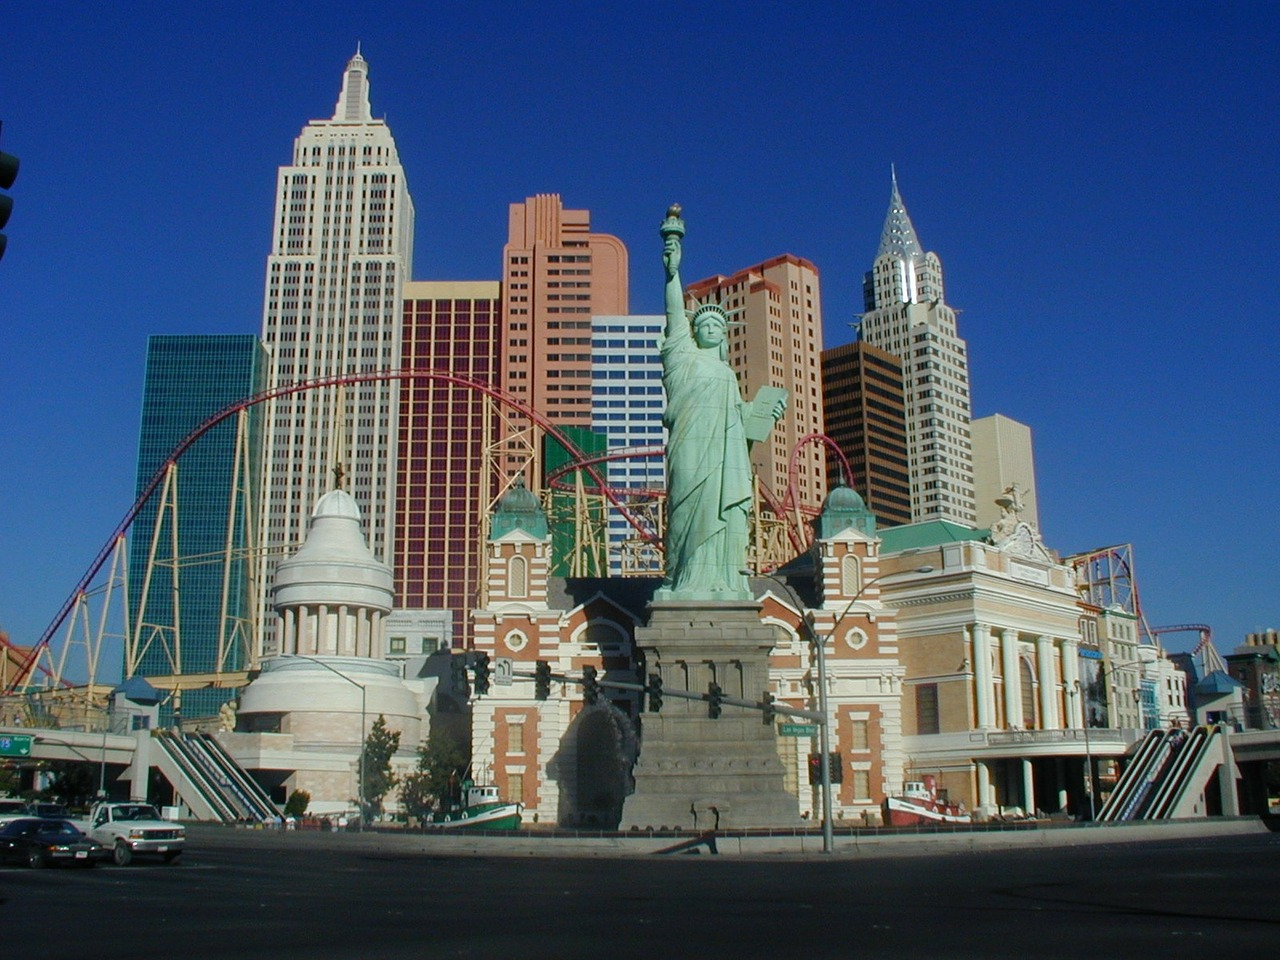 View of the Las Vegas strip with the New York casino.